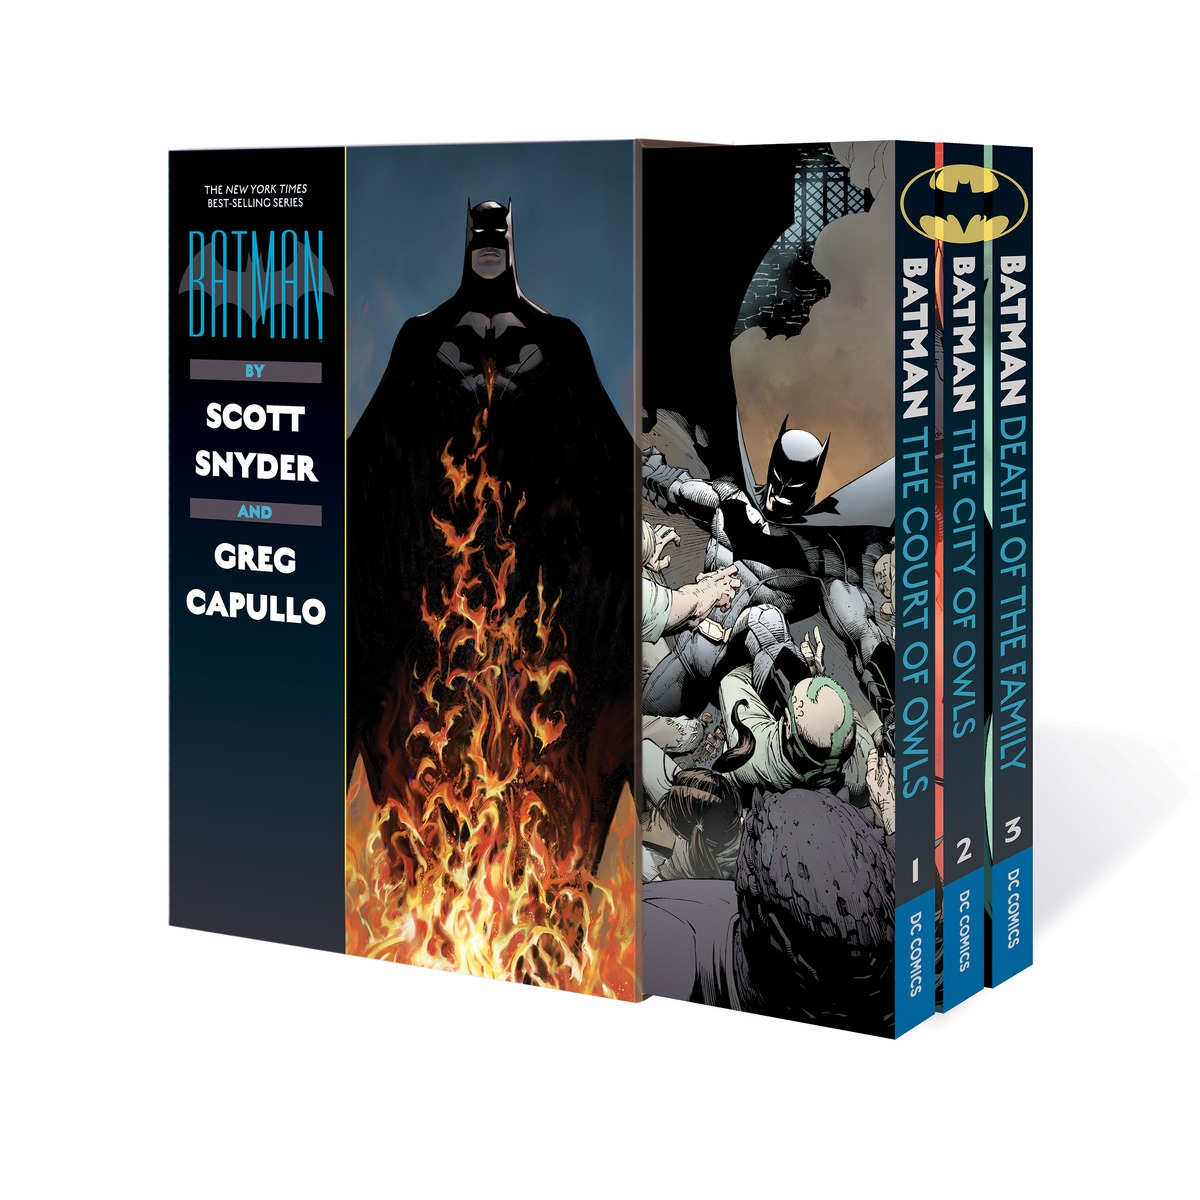 Batman by Scott Snyder & Greg Capullo Box Set samuel richardson clarissa or the history of a young lady vol 8